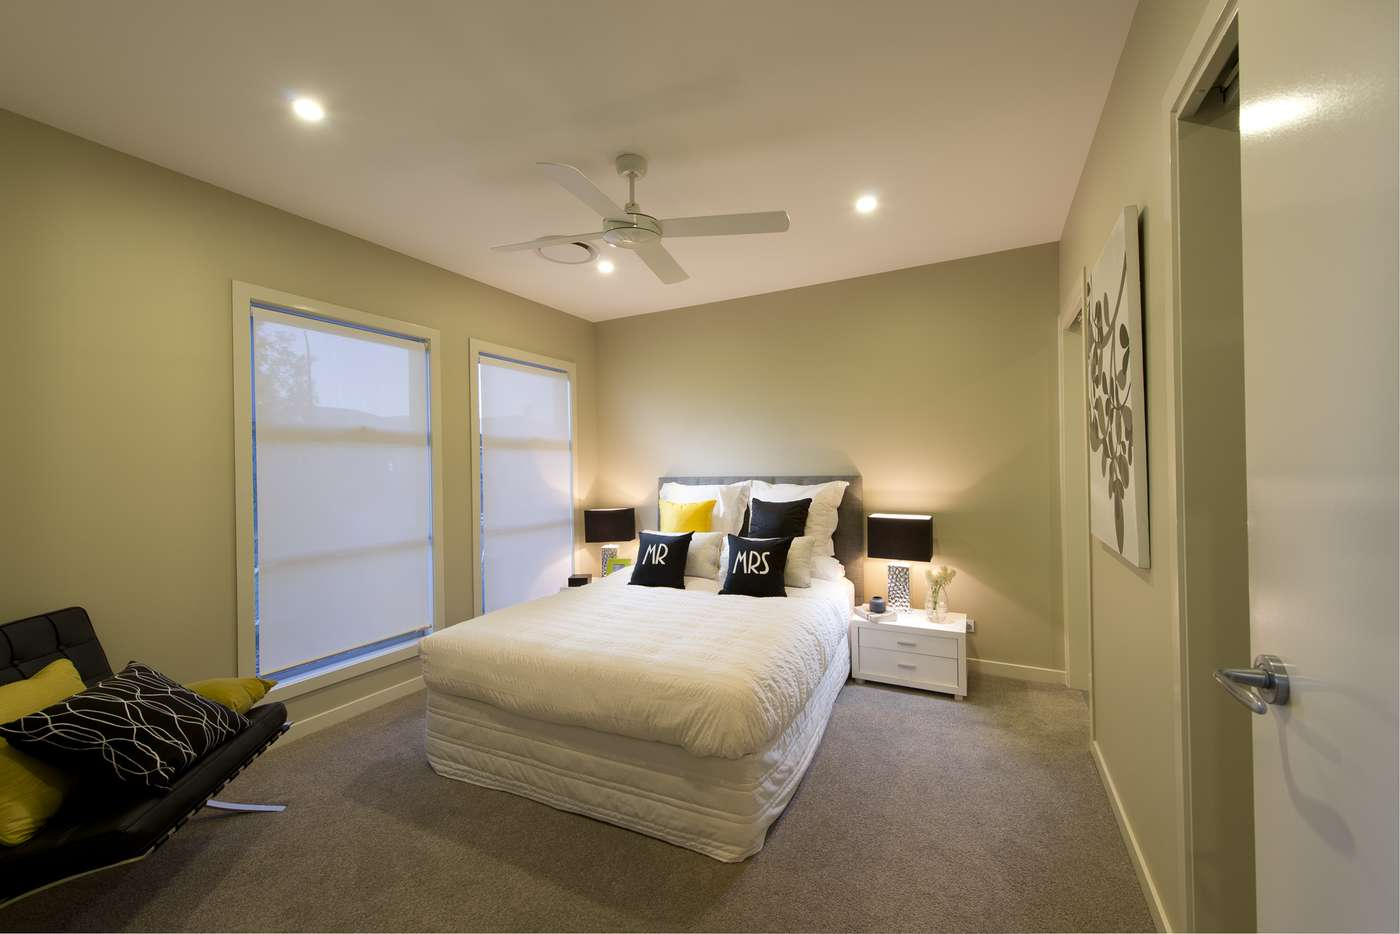 Seventh view of Homely house listing, 8 Azure St, Caloundra West QLD 4551